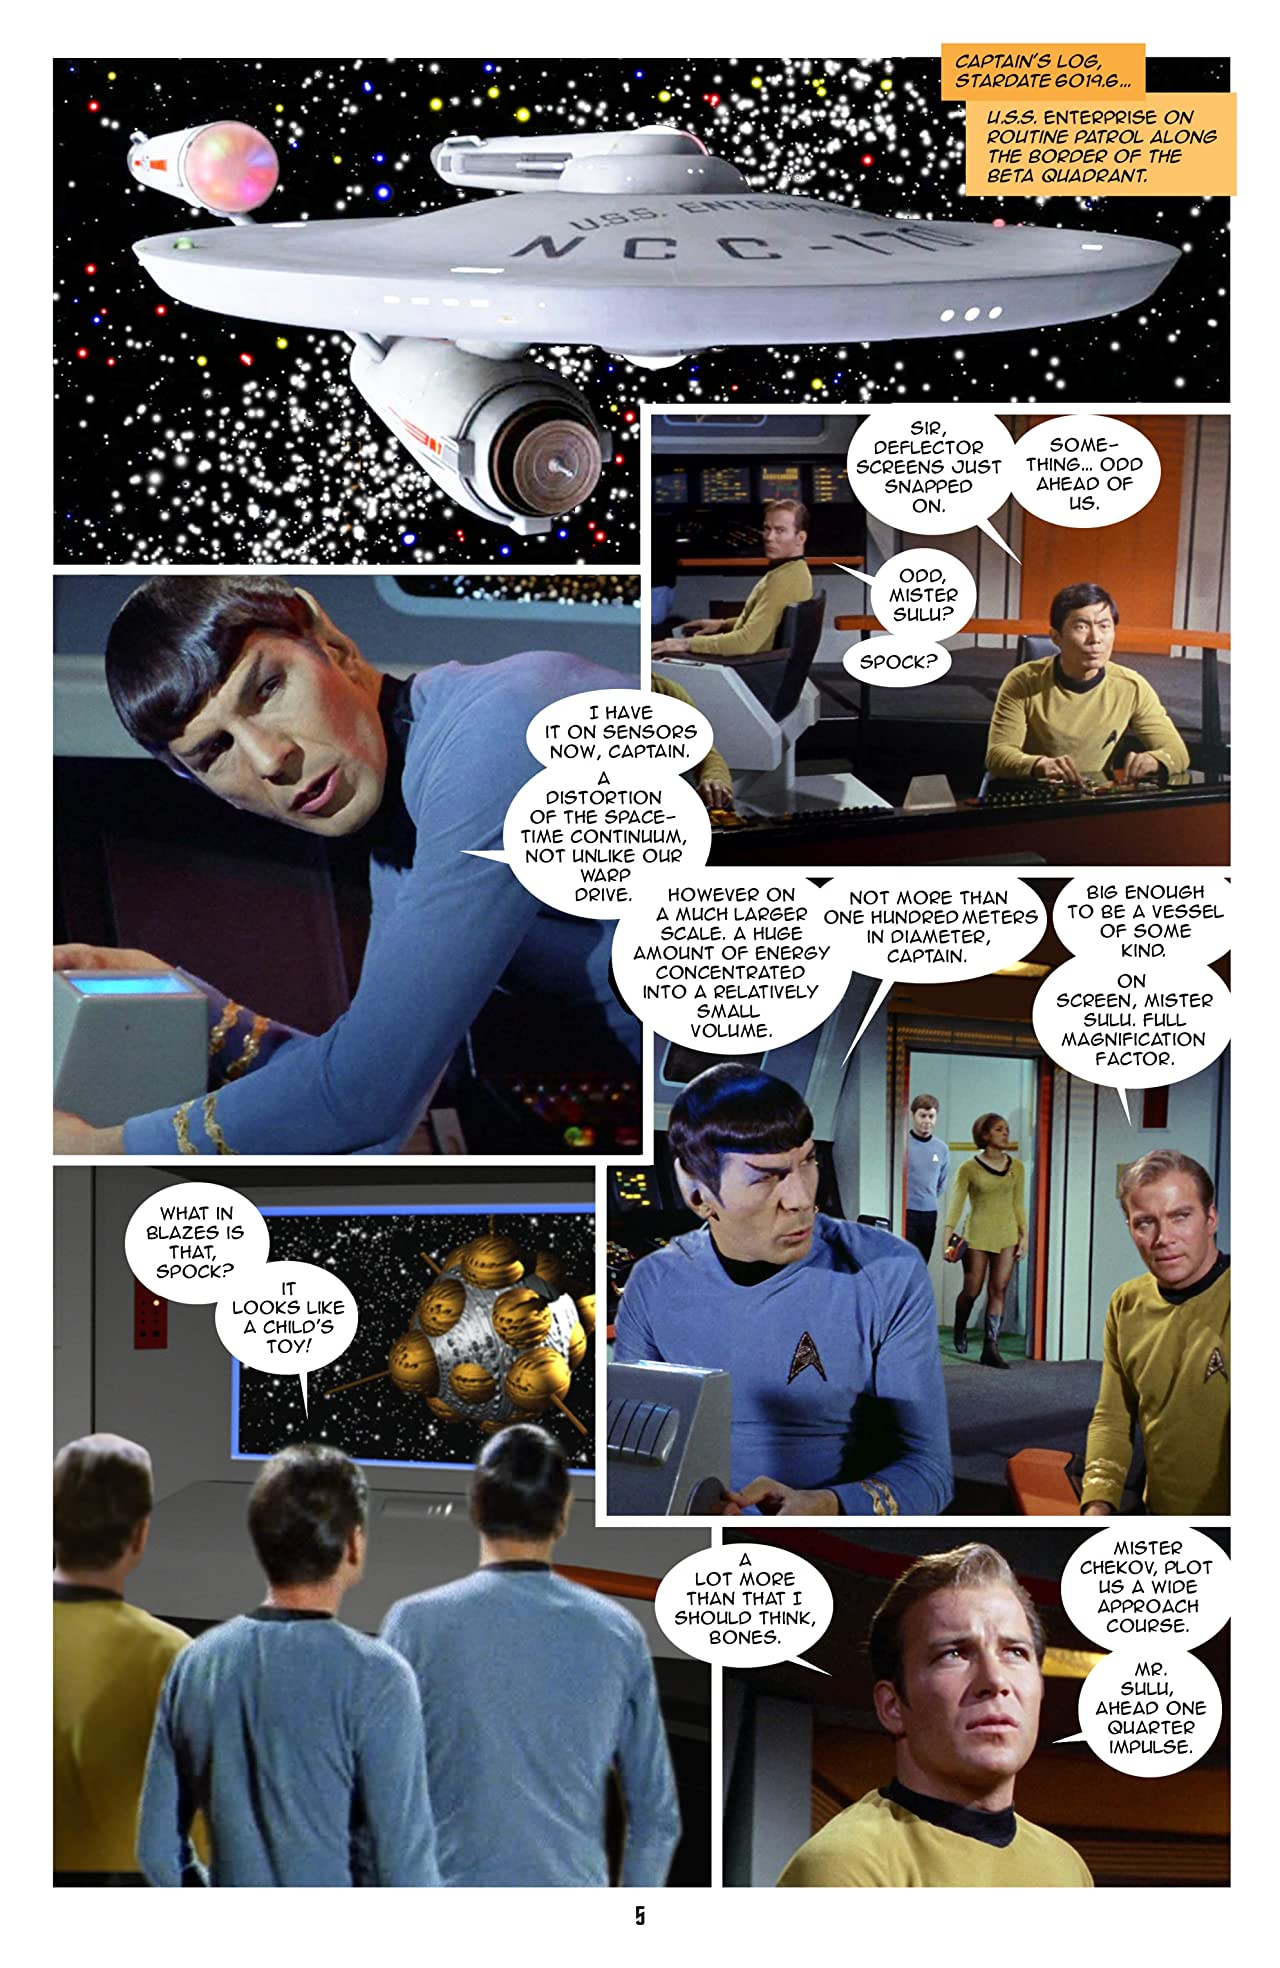 Star Trek: New Visions Vol. 6